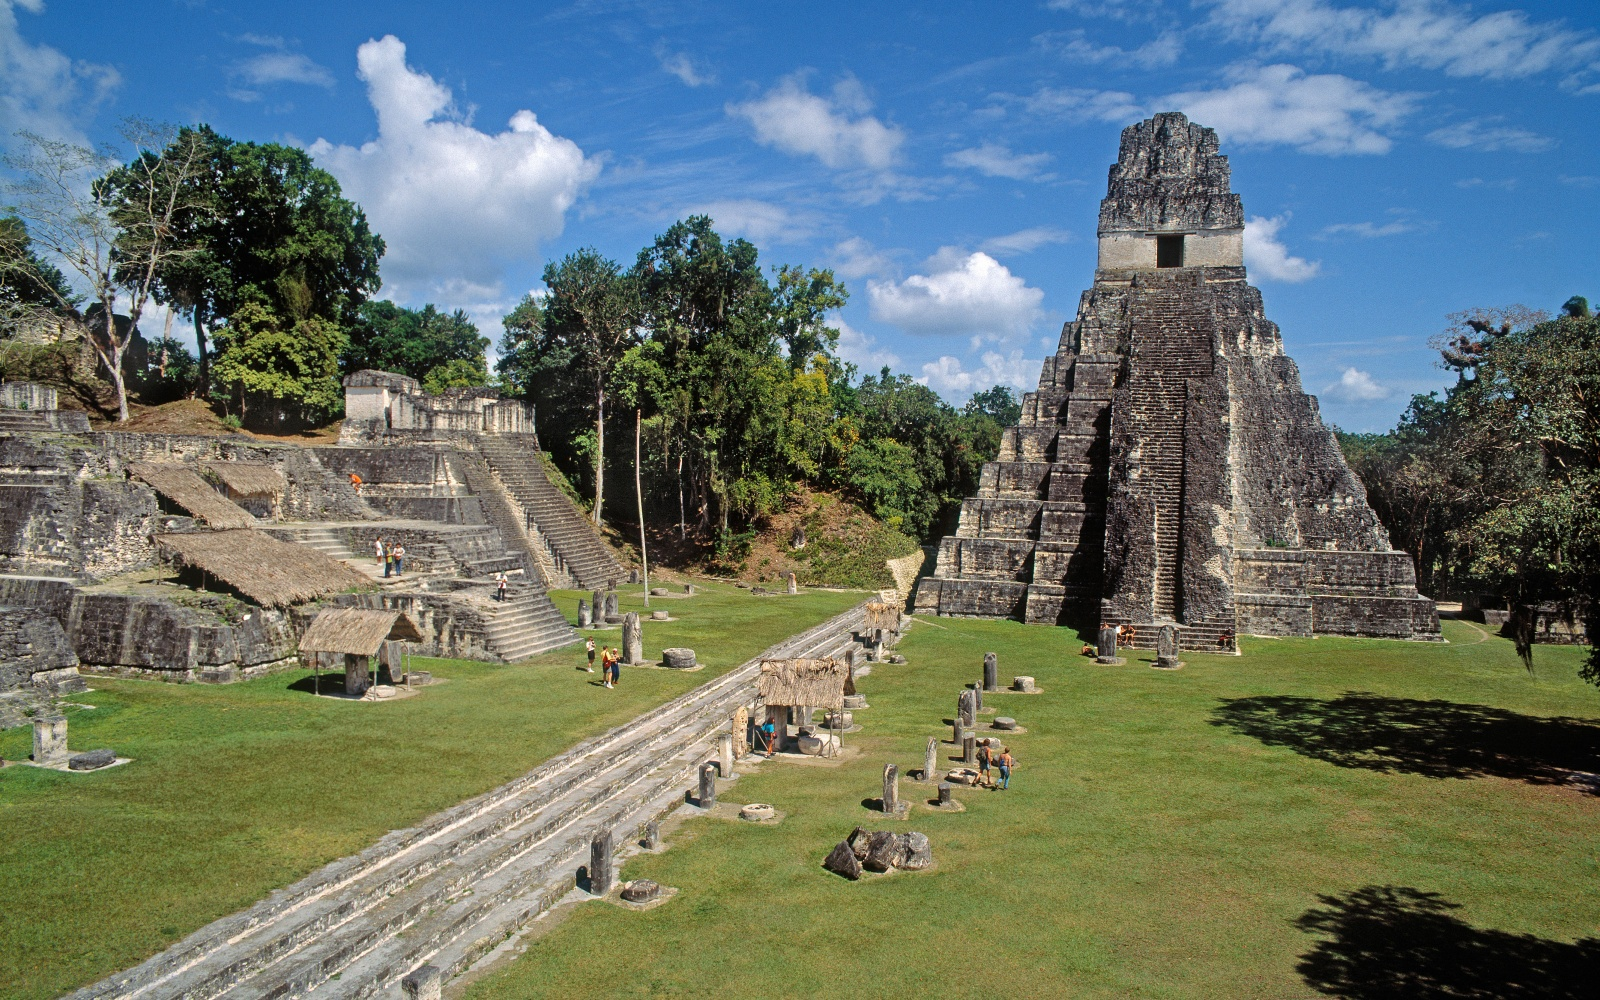 The Mayan Pyramids of Tikal in Guatemala